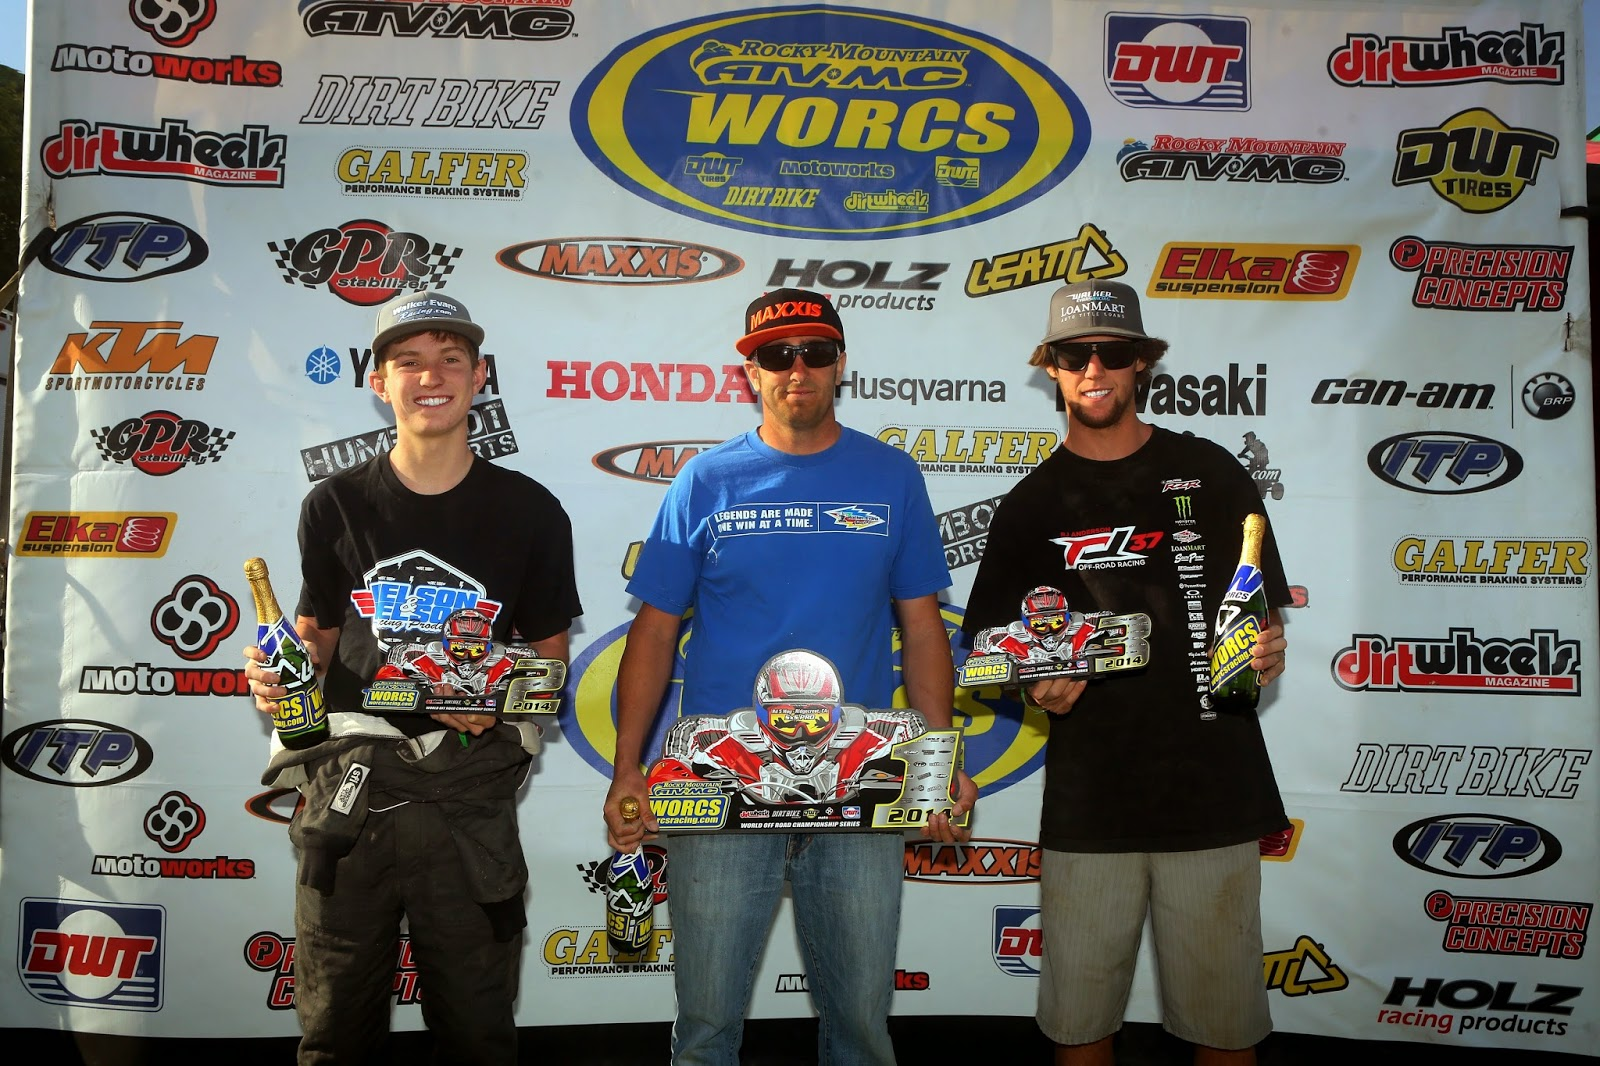 WORCS Round 5 Podium at Ridgecrest